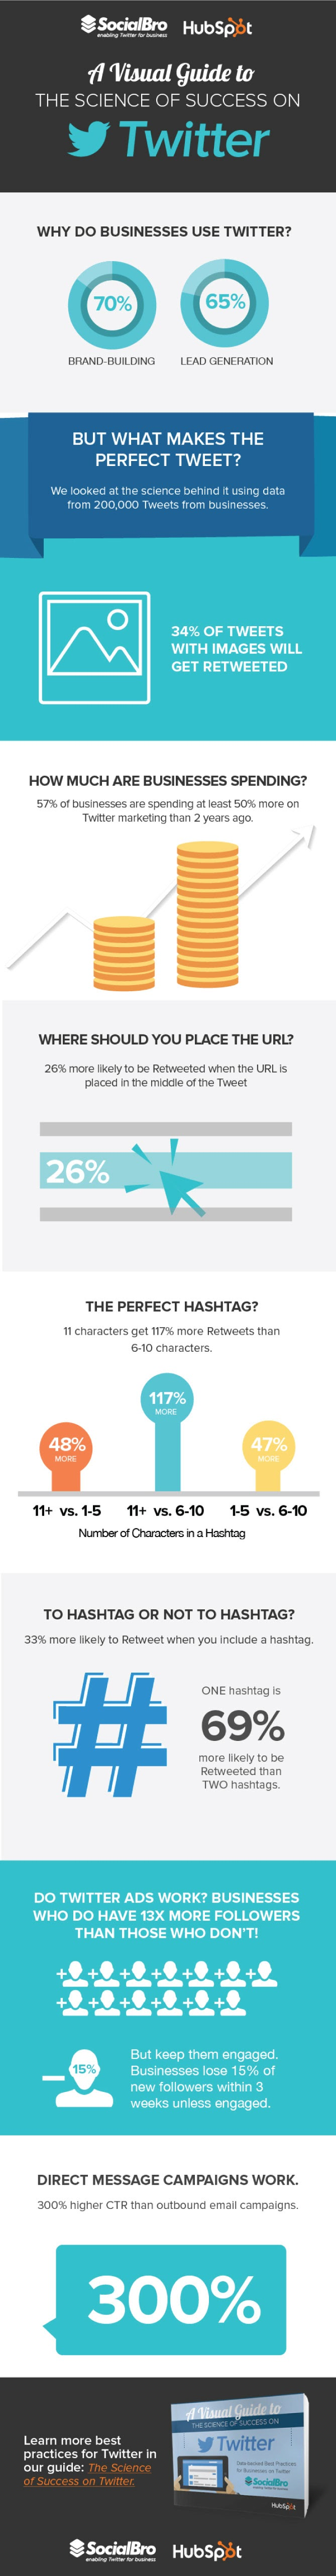 A Visual Guide to the Science of Twitter Success - #Infographic